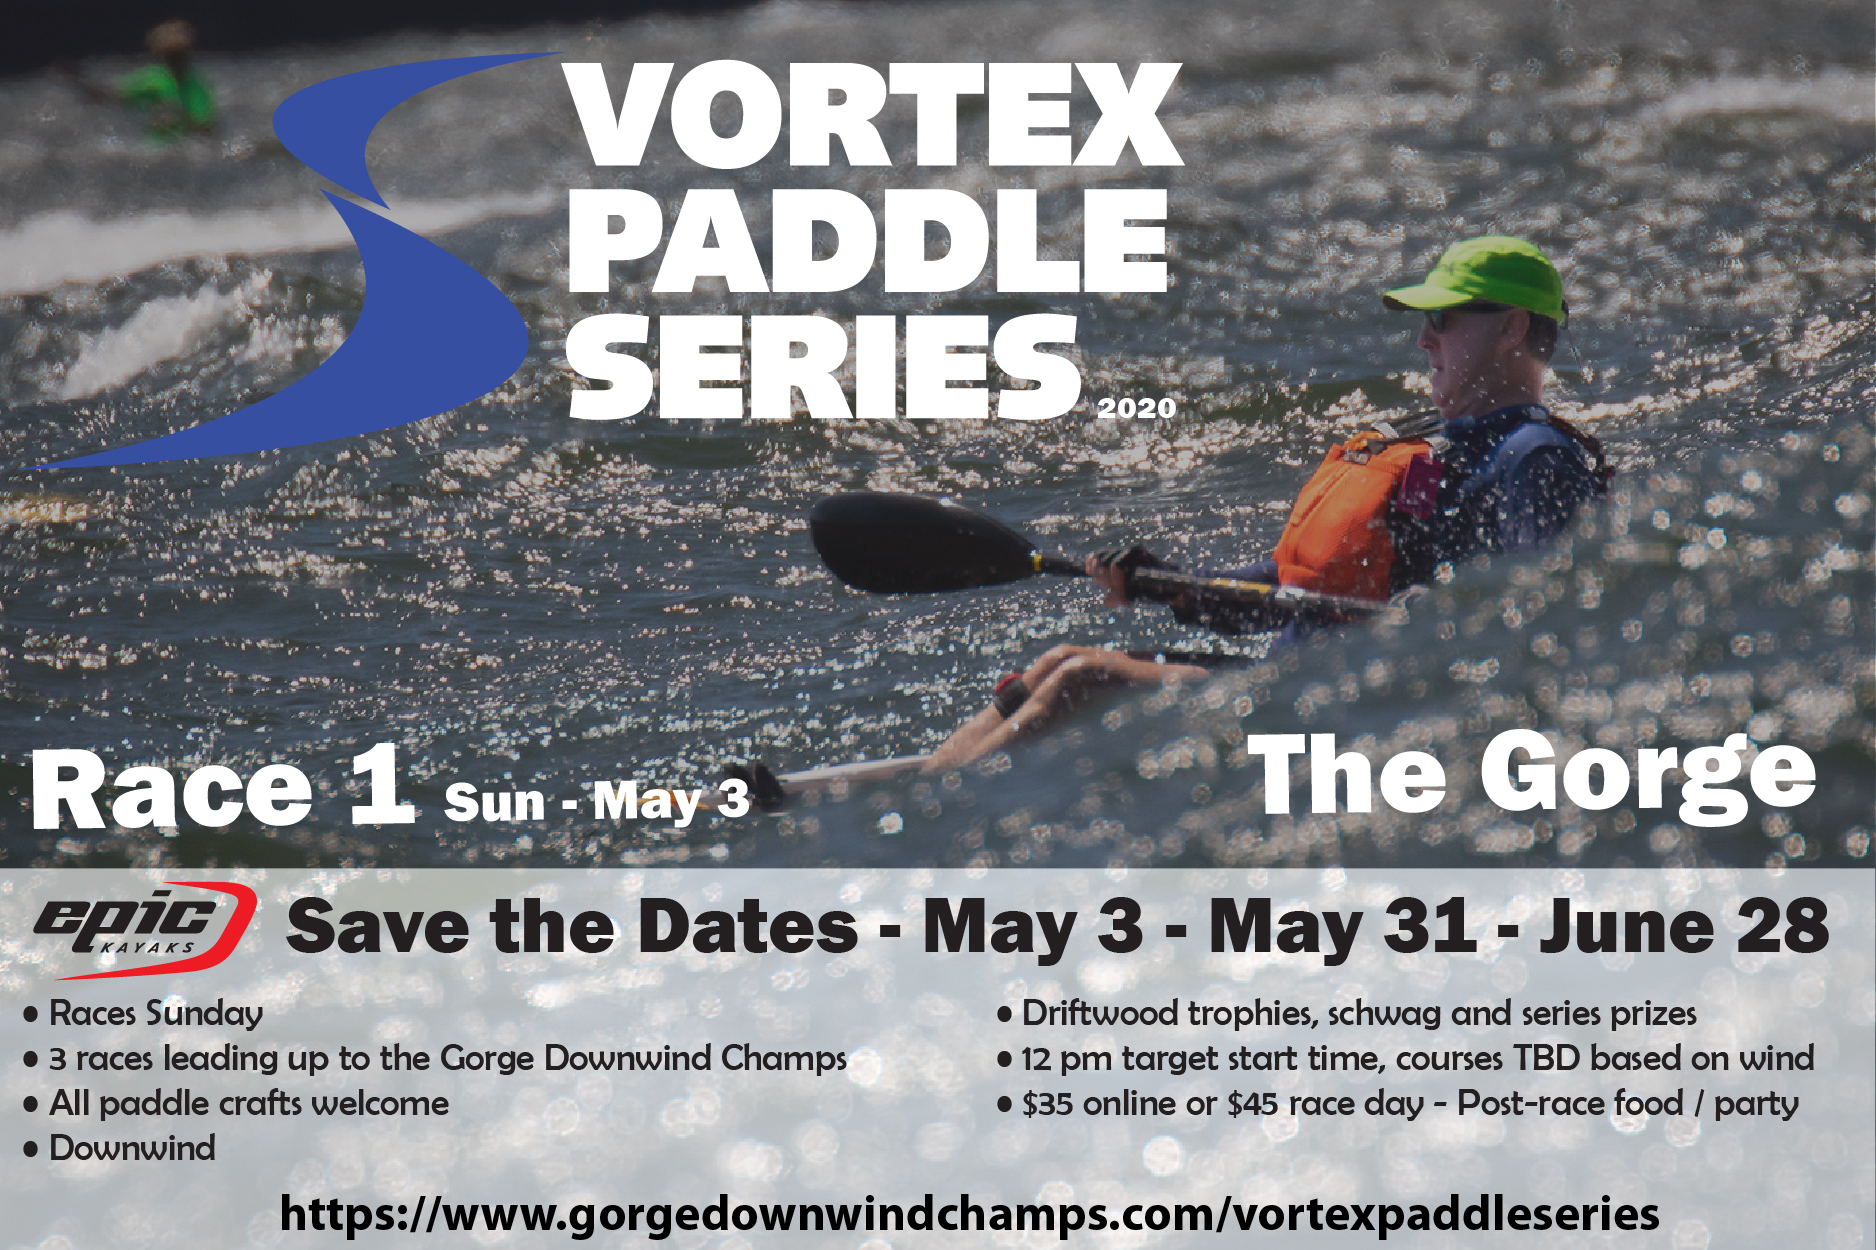 2020 Vortex Paddle Series - Promo Splash